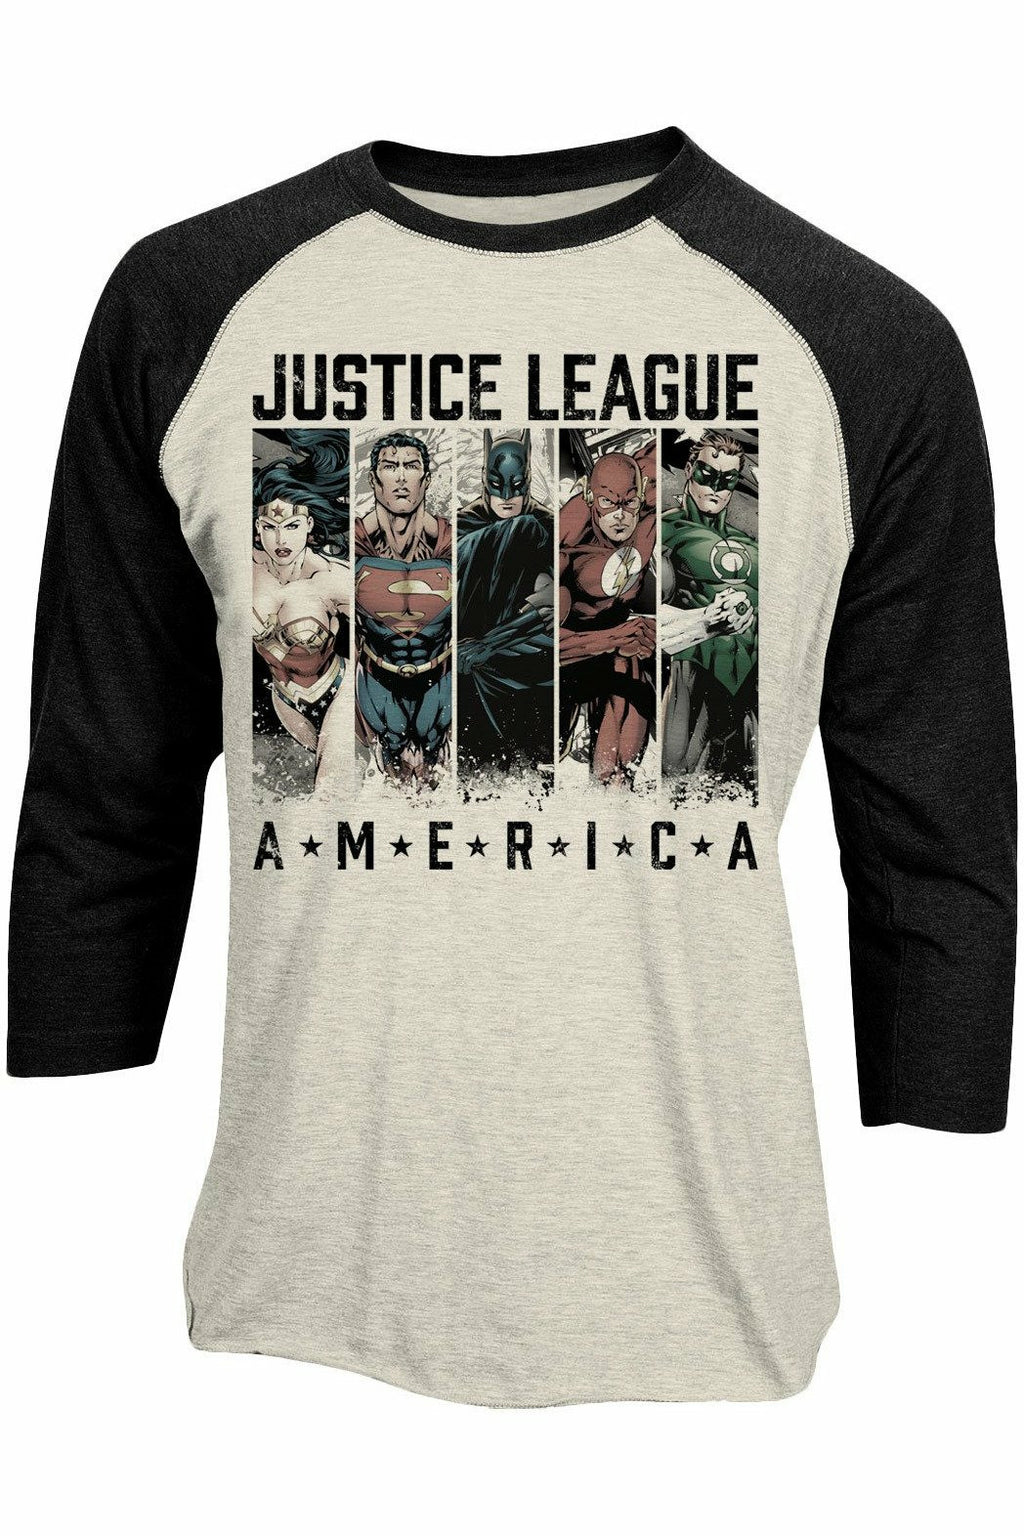 Justice League AMERICA Baseball Top